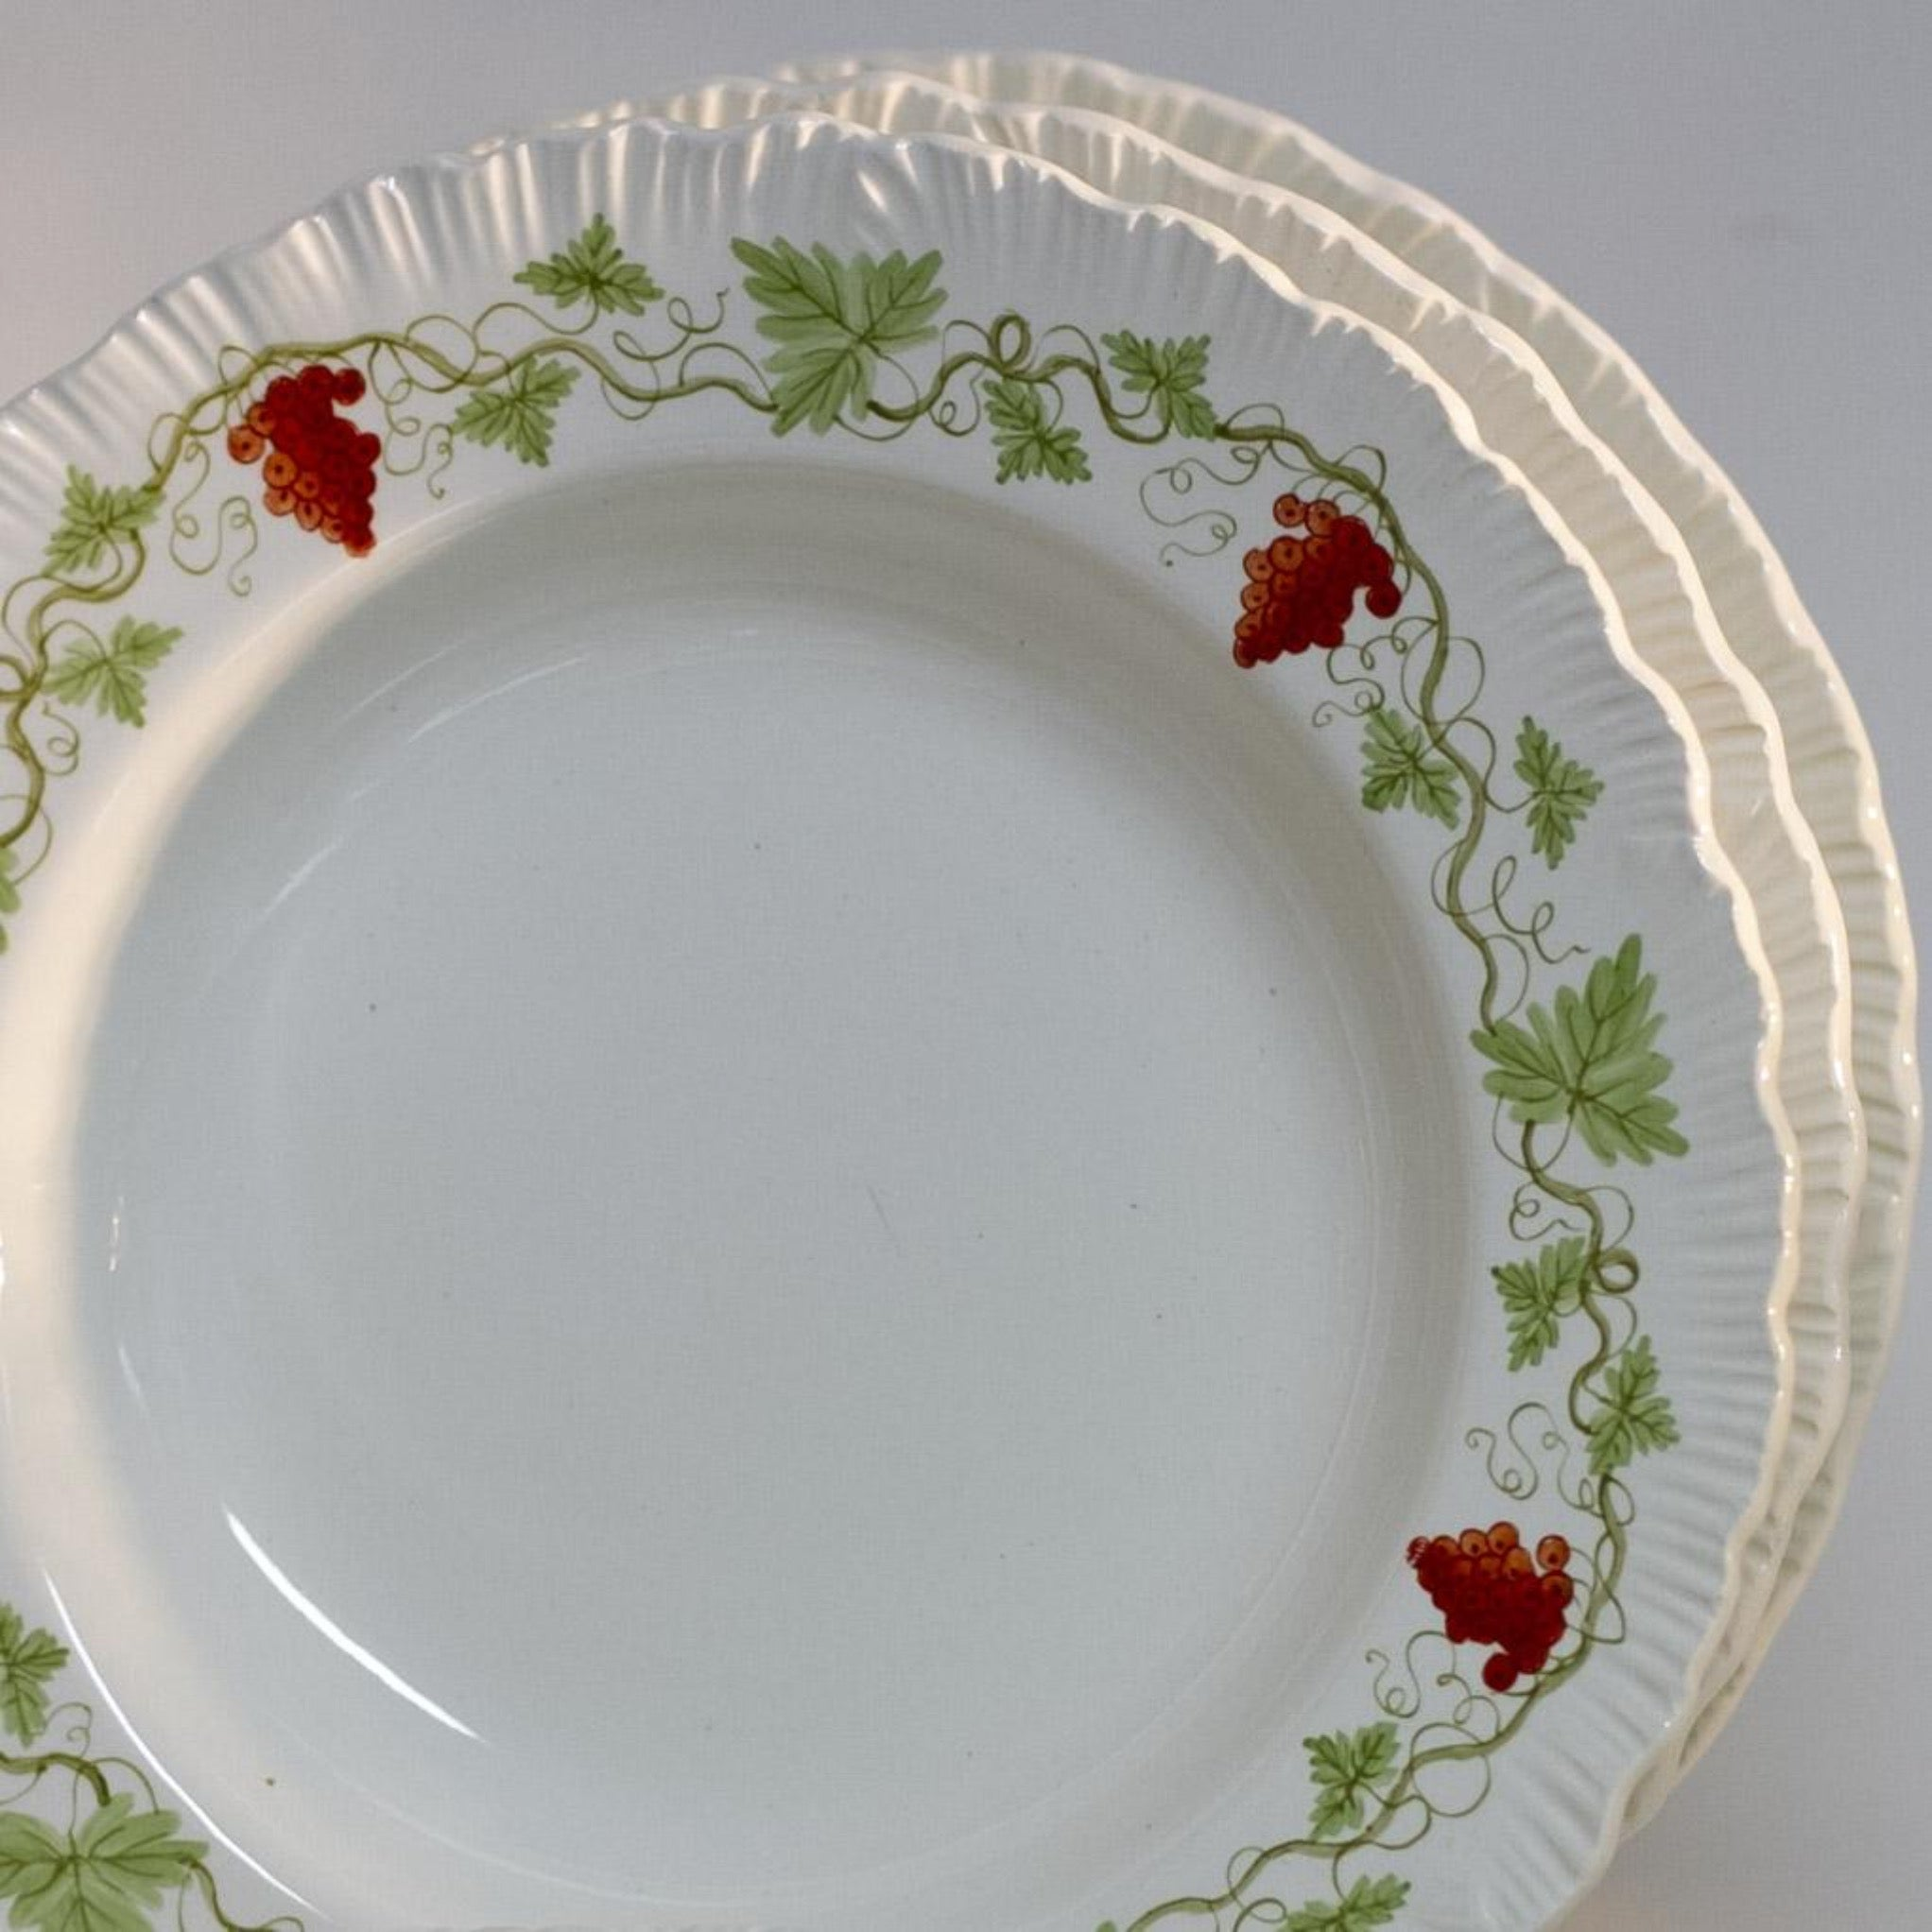 BACCHUS RED by Wedgewood RIMMED SOUP BOWL Circa 1940 - 1974 Discontinued Pattern Made in England